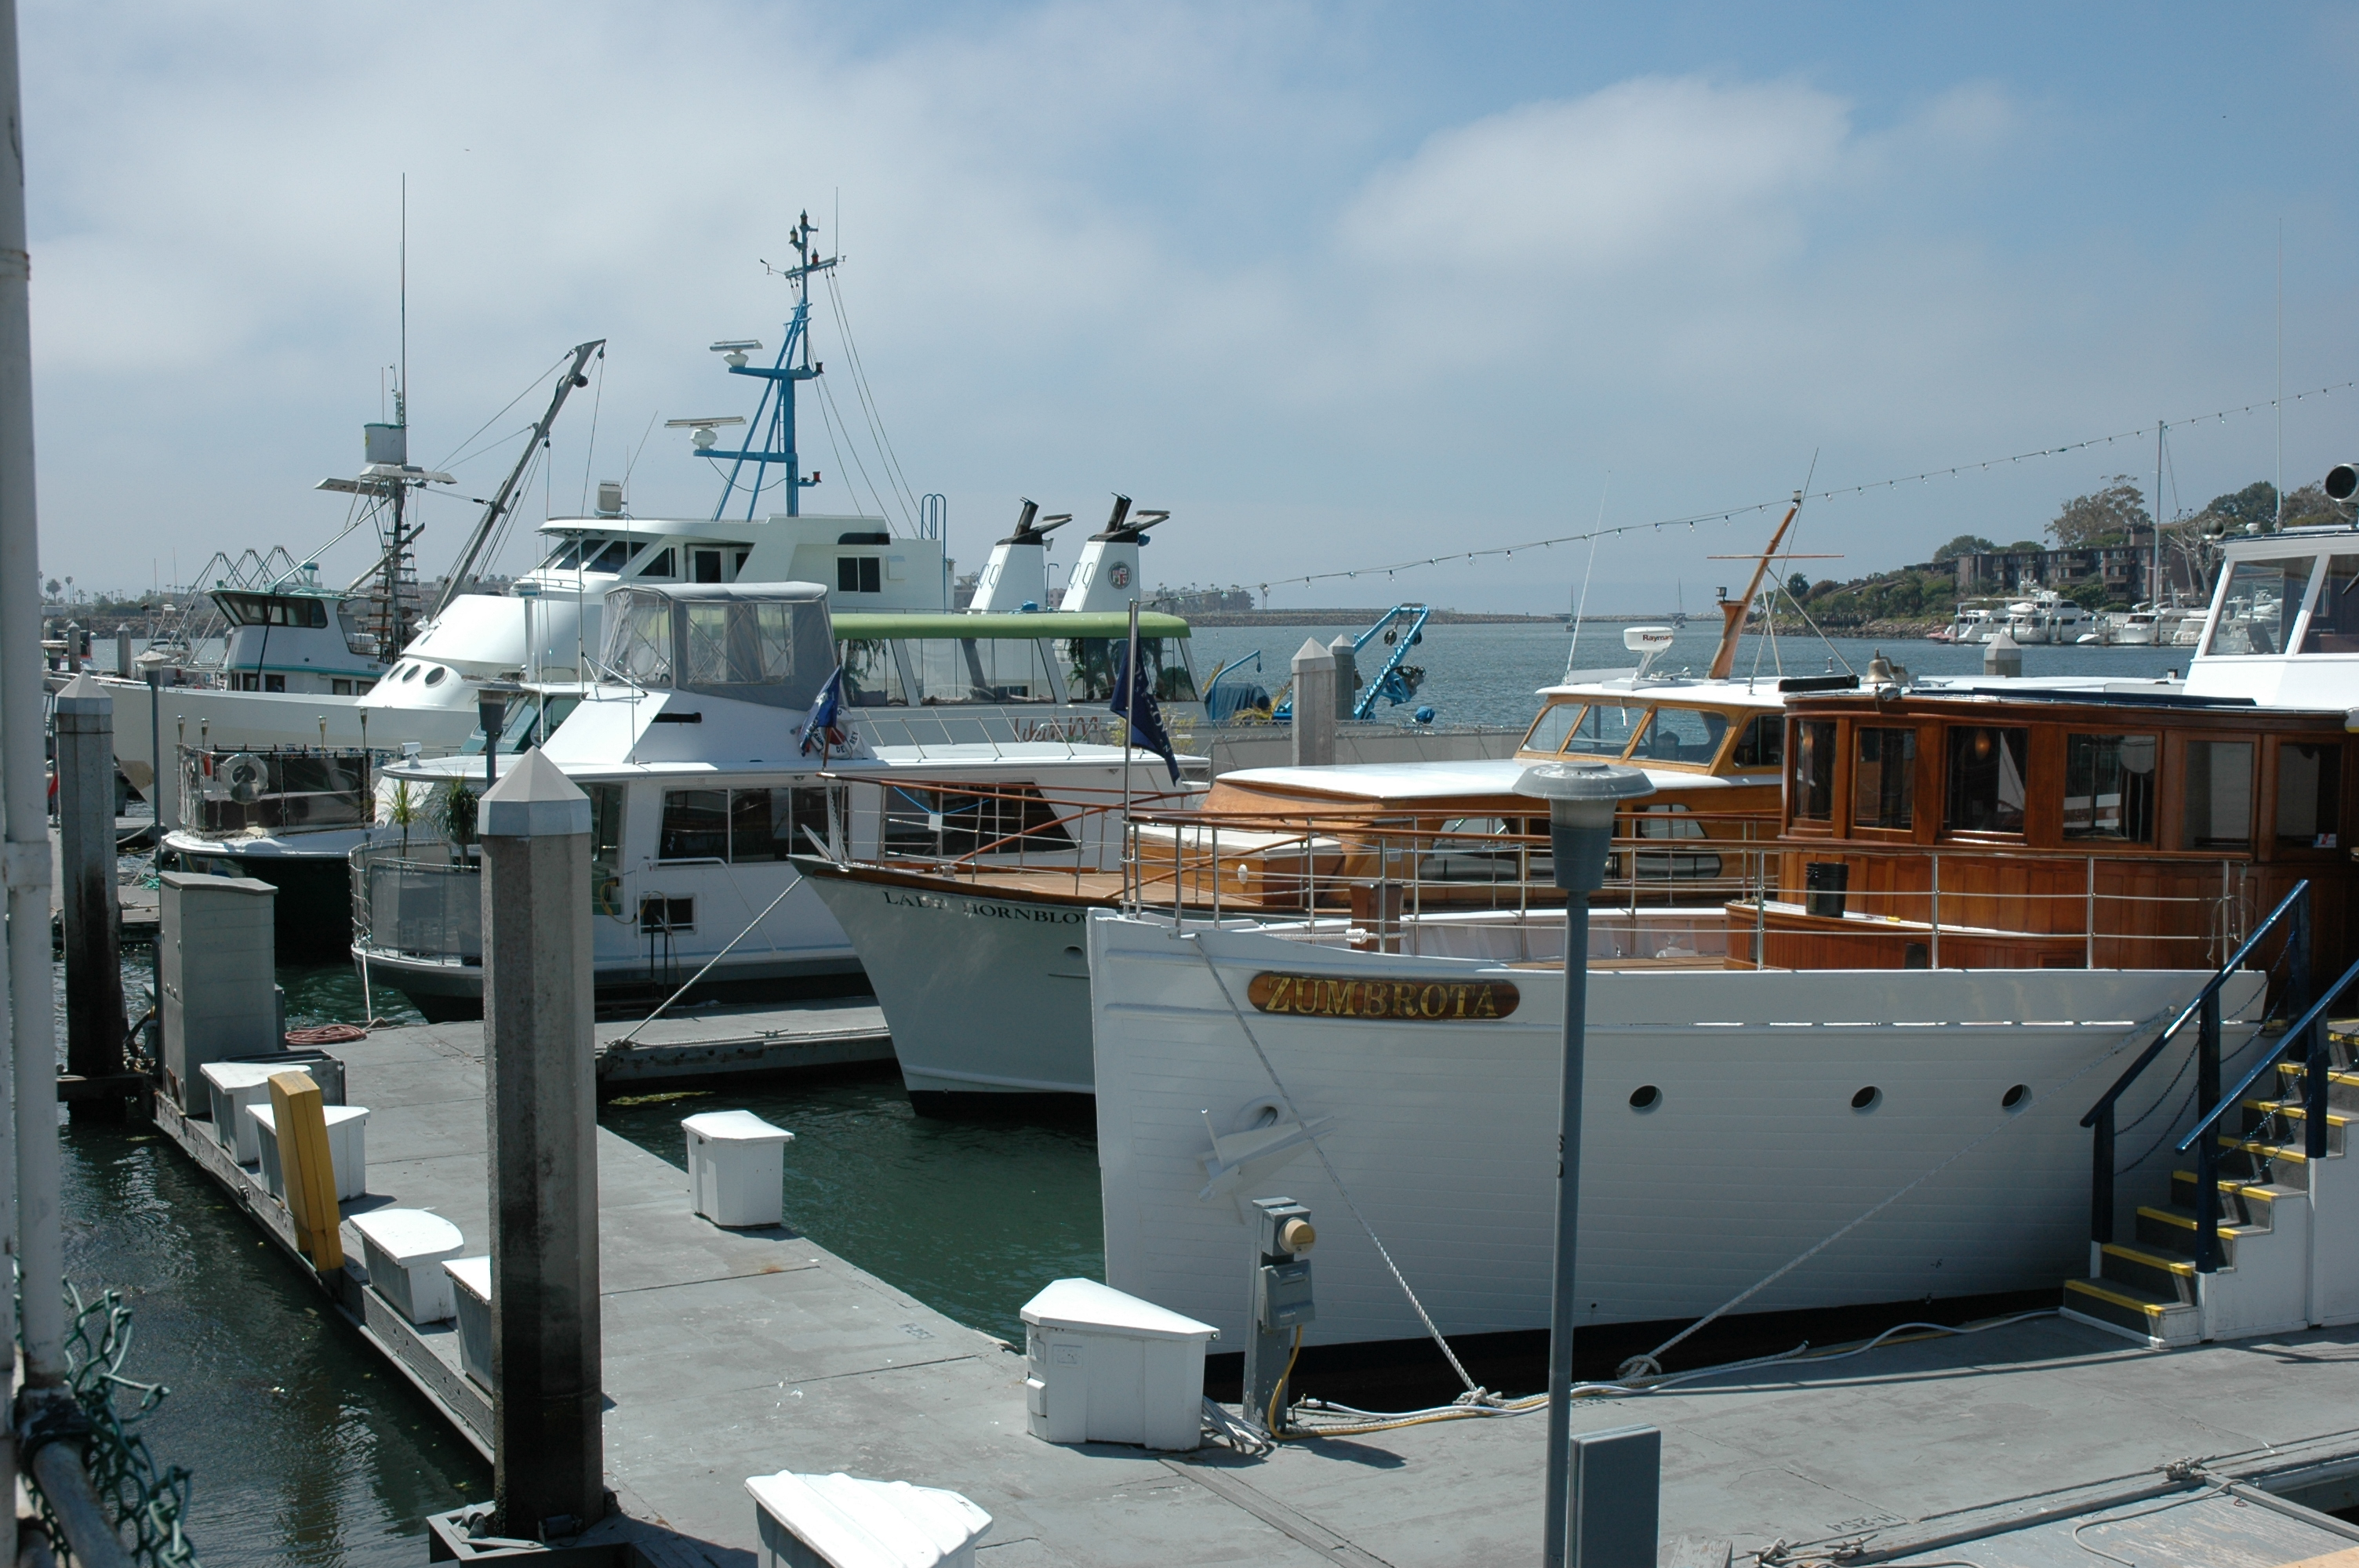 Boat Storage, docking, parking fees to increase at L.A. beaches and harbors